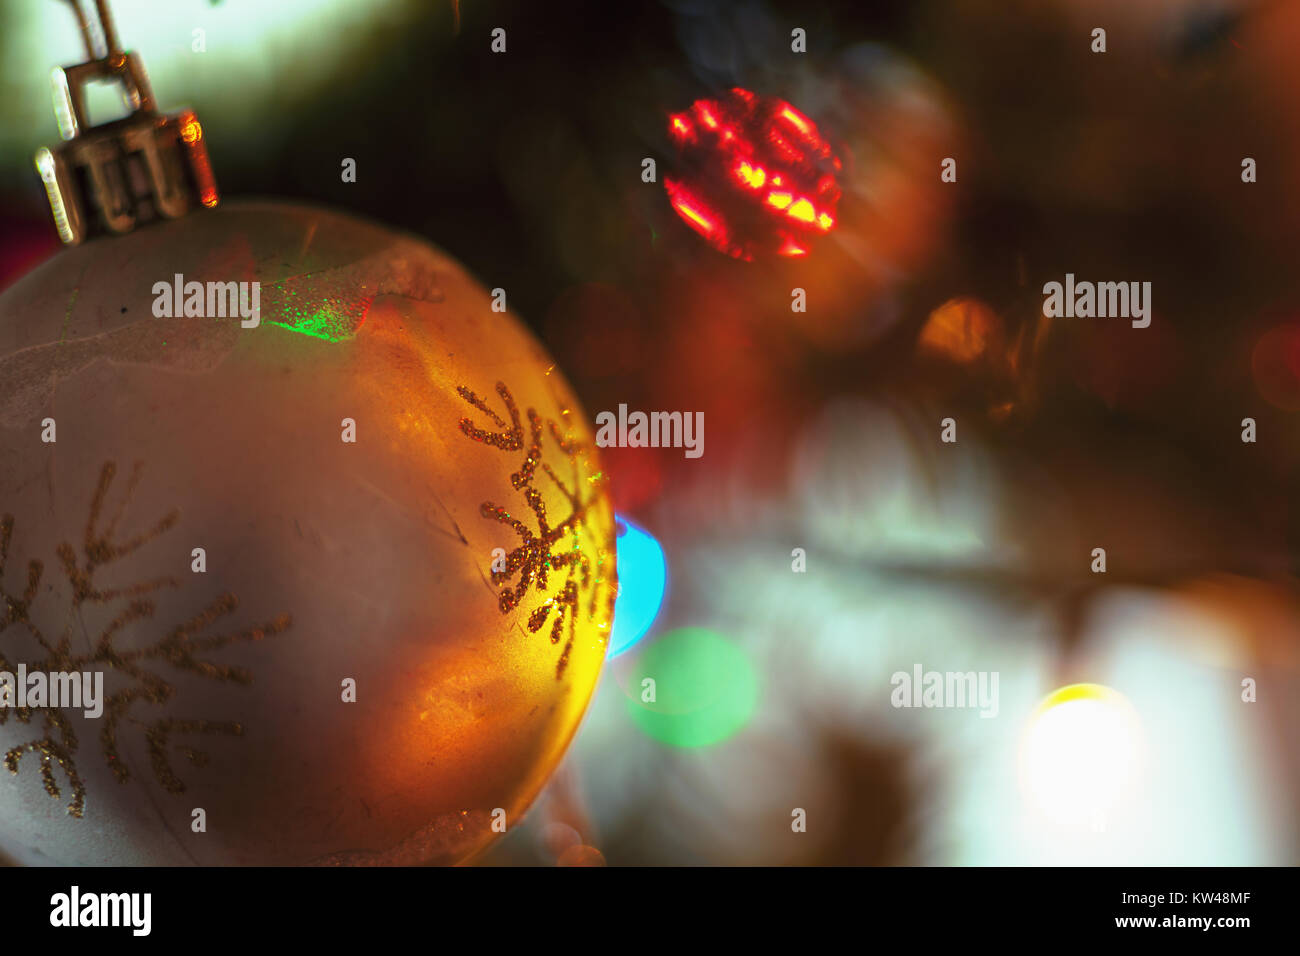 Closeup View Of Colorful Parts Of Christmas Tree With Ornaments And